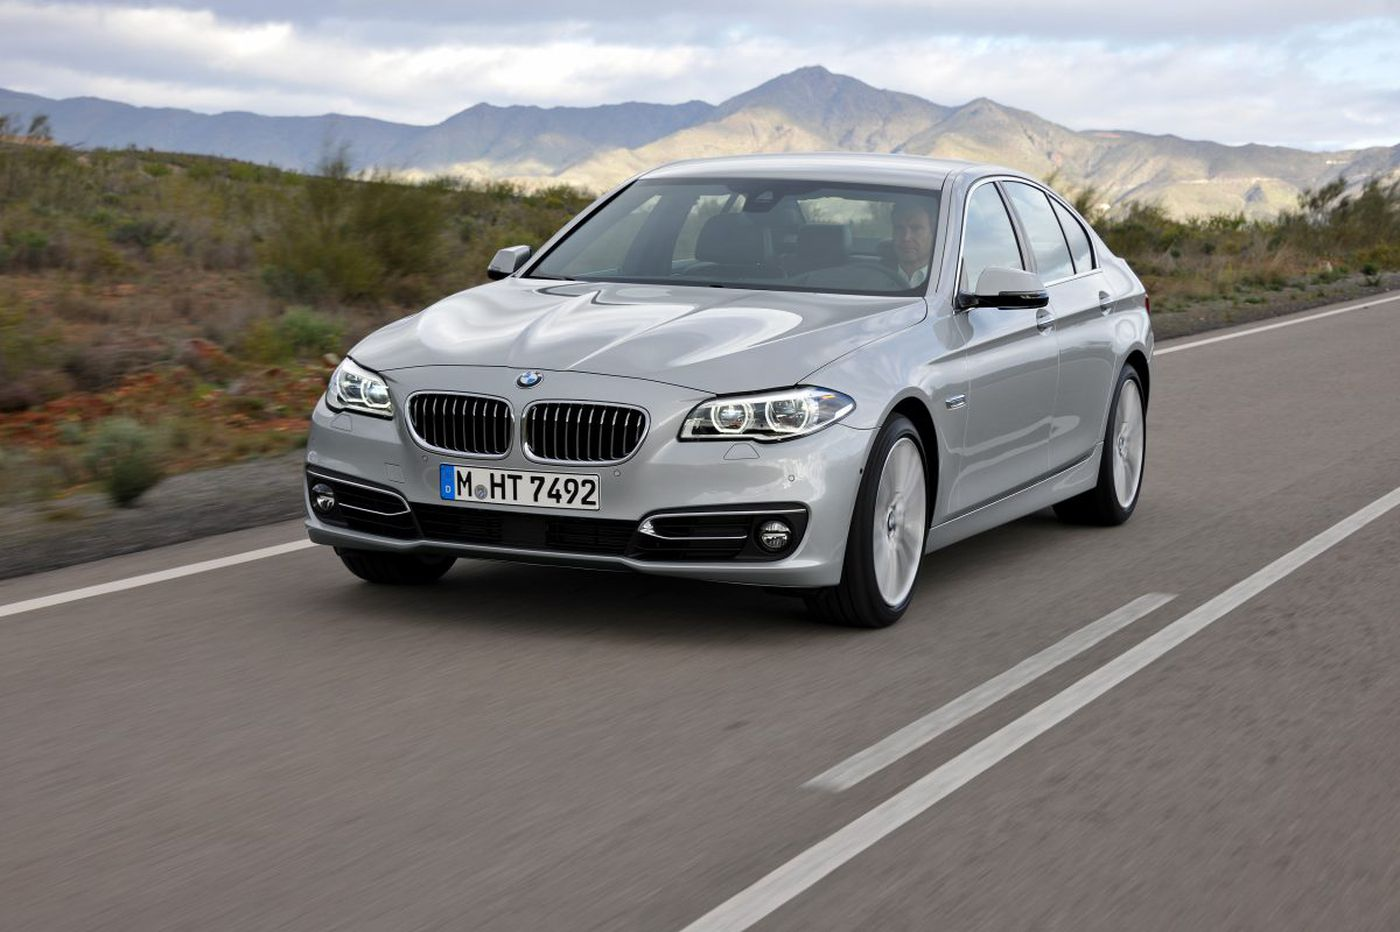 Sharing the safe-driving skills - of BMW and Audi drivers?